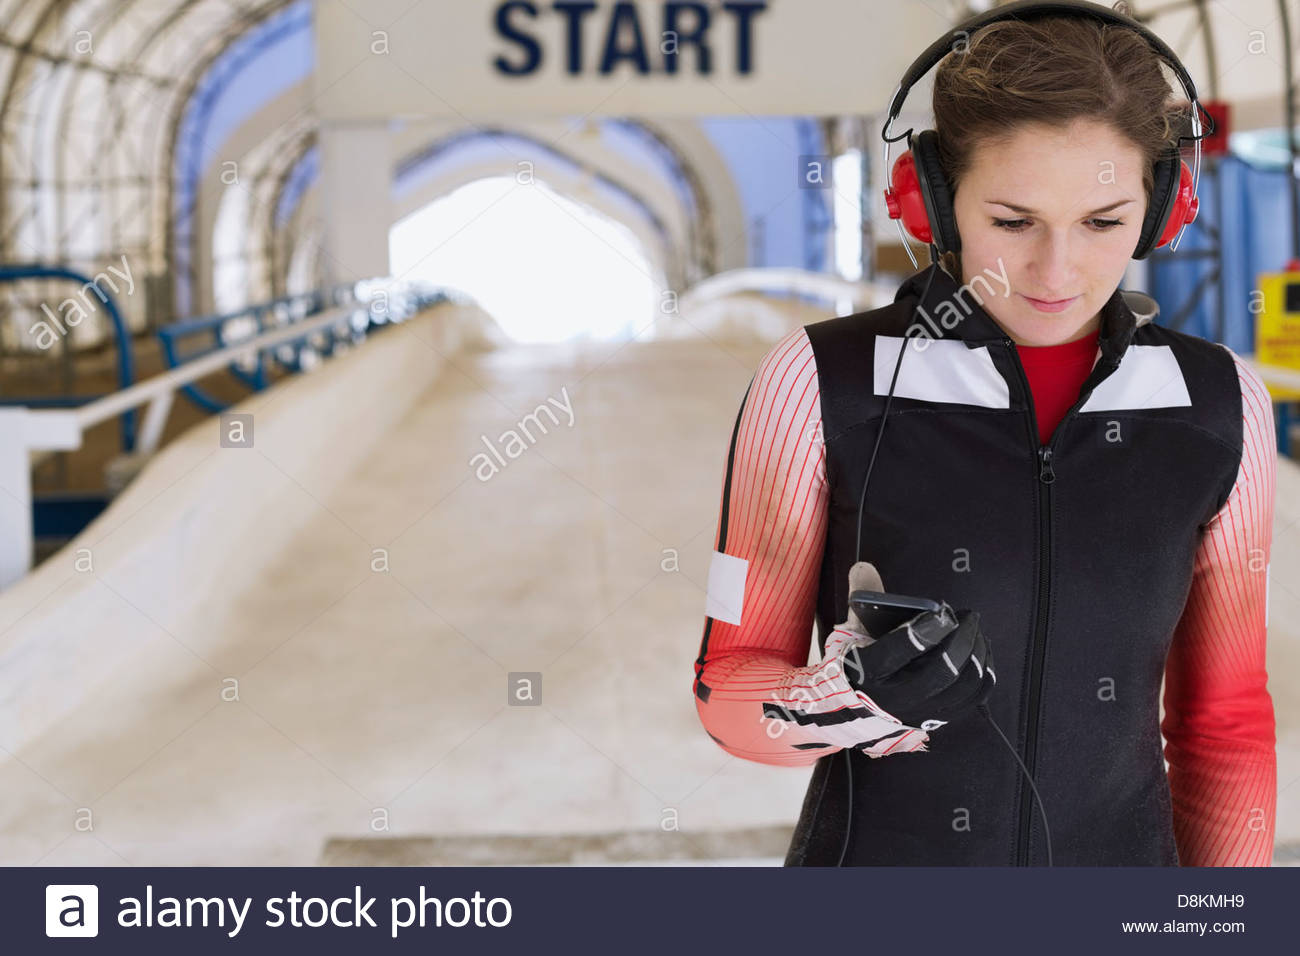 Female skeleton athlete preparing for race - Stock Image